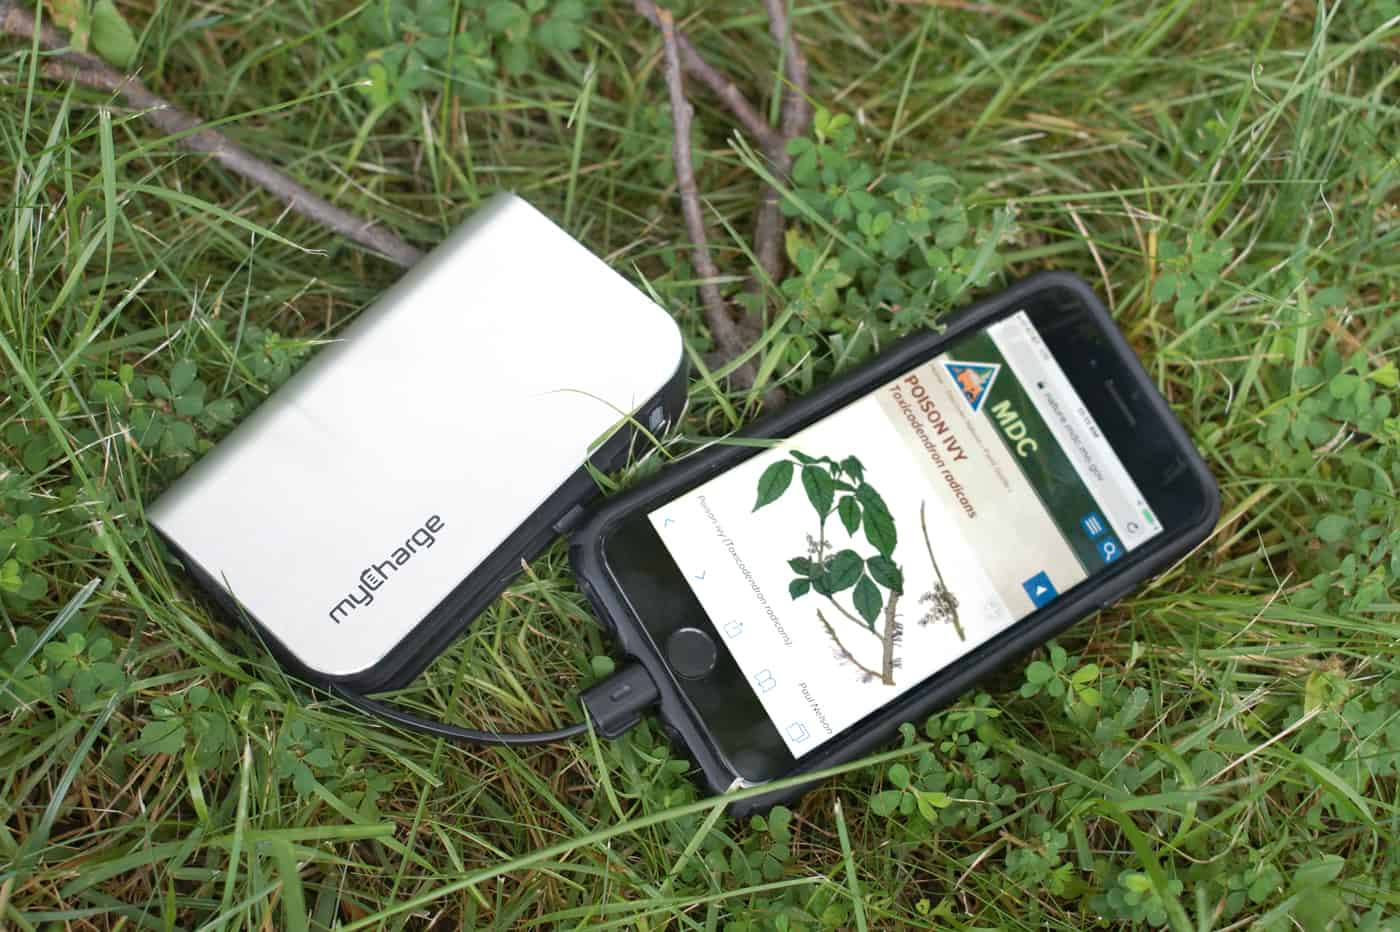 iphone on grass, plugged into a myCharge power bank